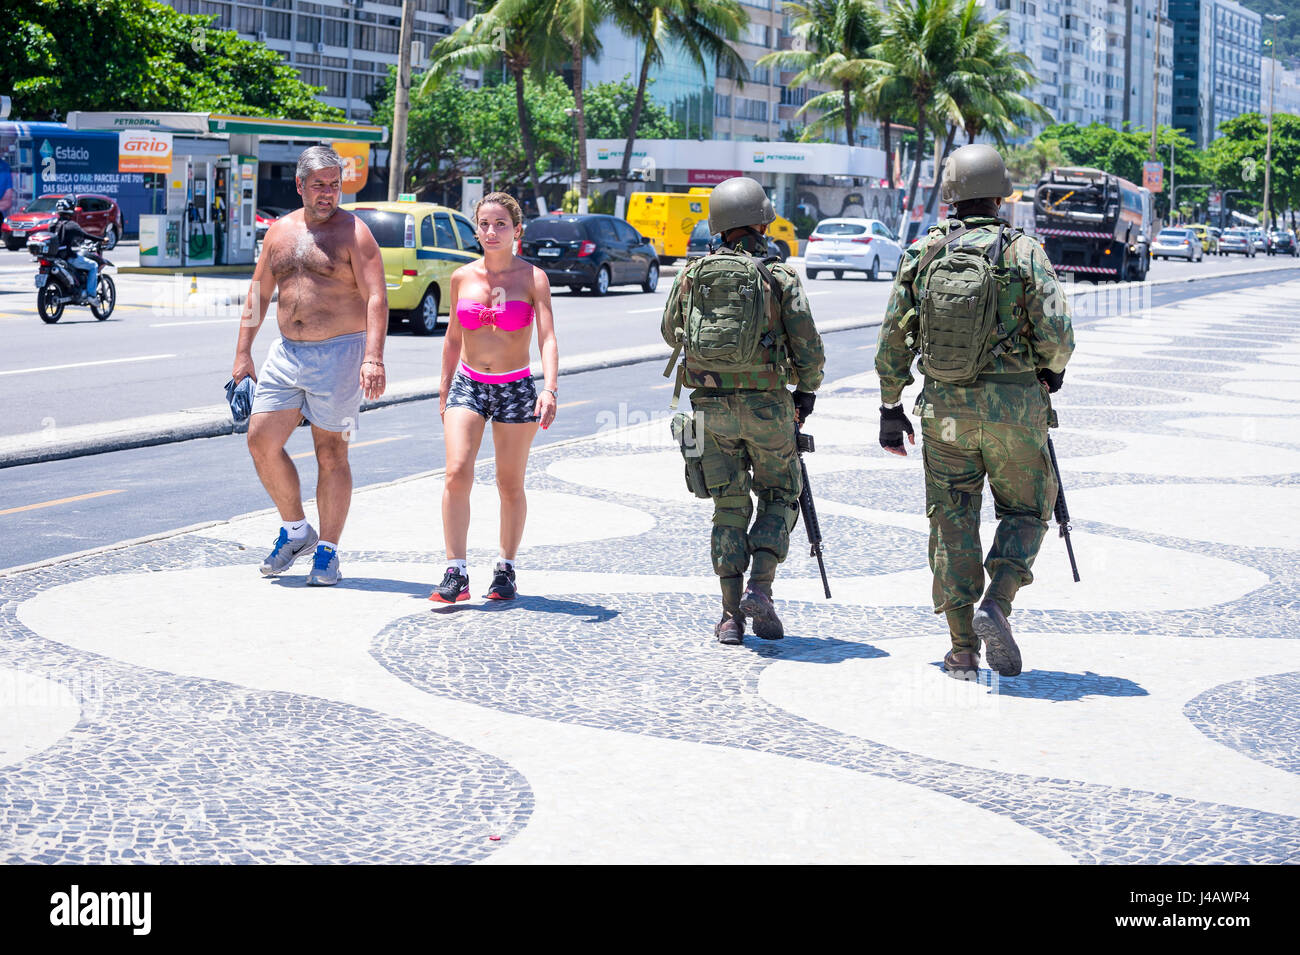 RIO DE JANEIRO - FEBRUARY 15, 2017: Two Brazilian Army soldiers stand in full camouflage uniform on the boardwalk - Stock Image